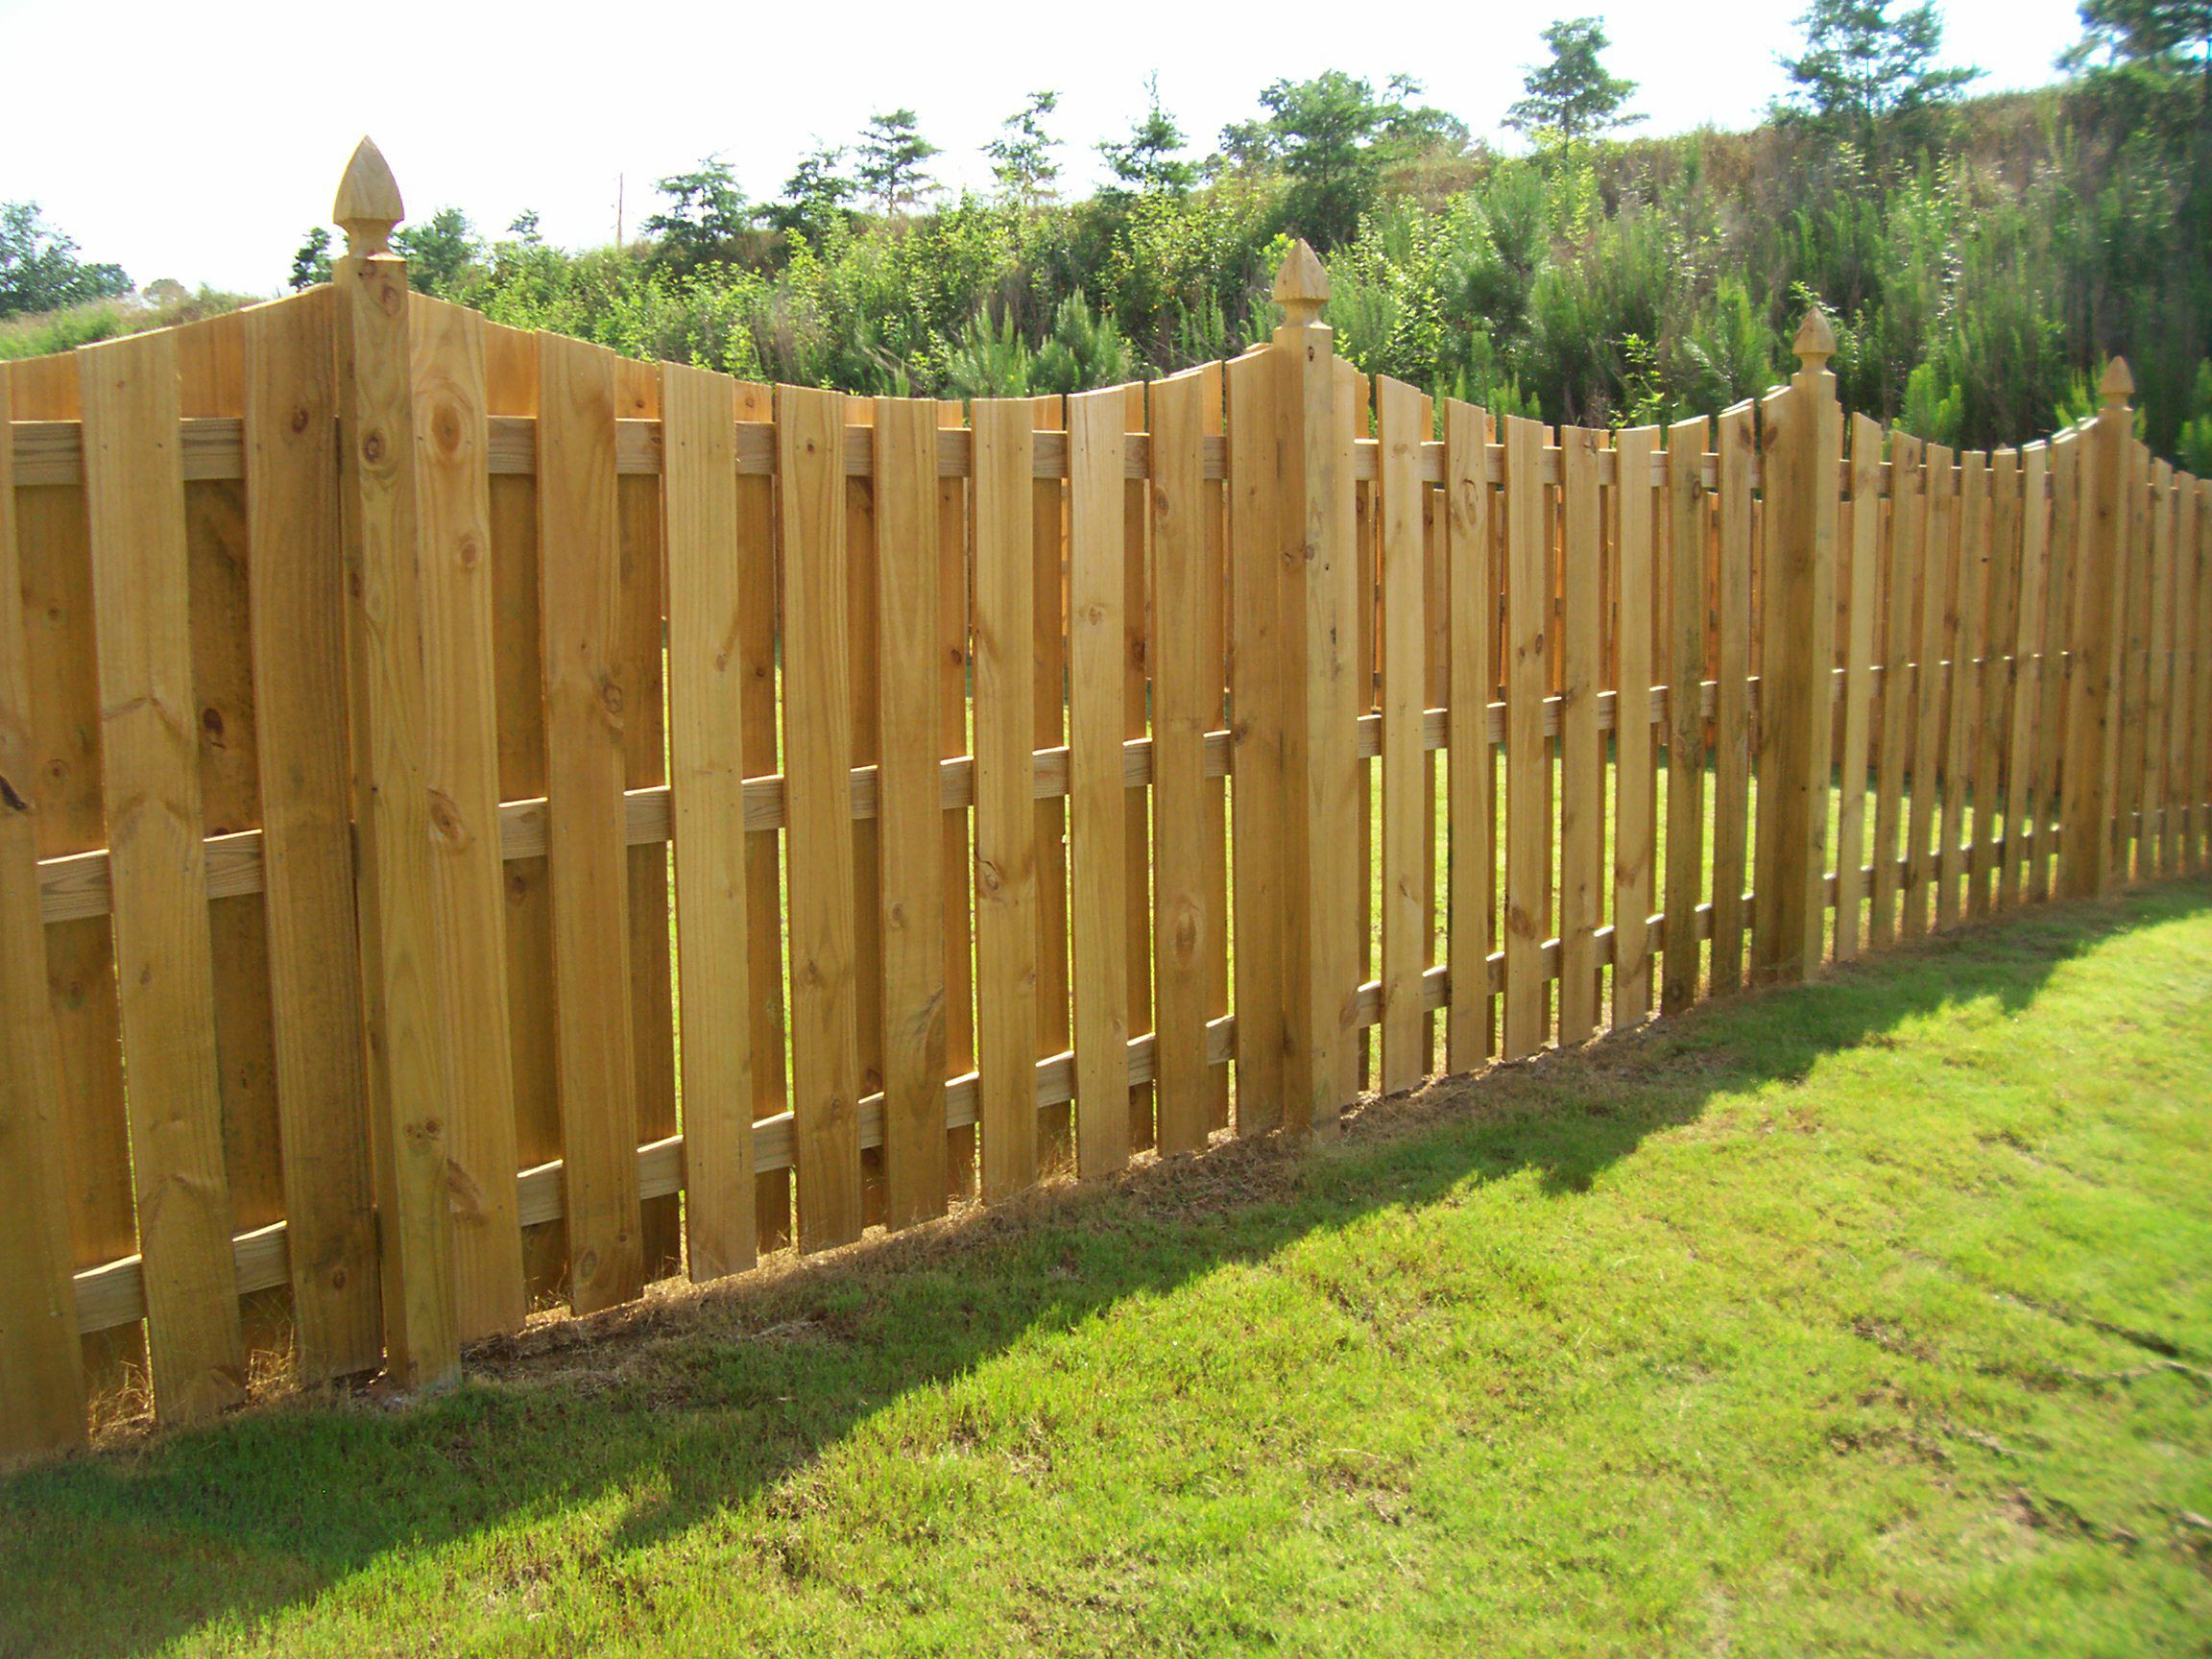 Impressive Designs Including Decorative Fences Privacy Fence Ideas Need Ideas Wood Fenceideas A Wood Check Out Our Gallery Outdoor Spaces Wood